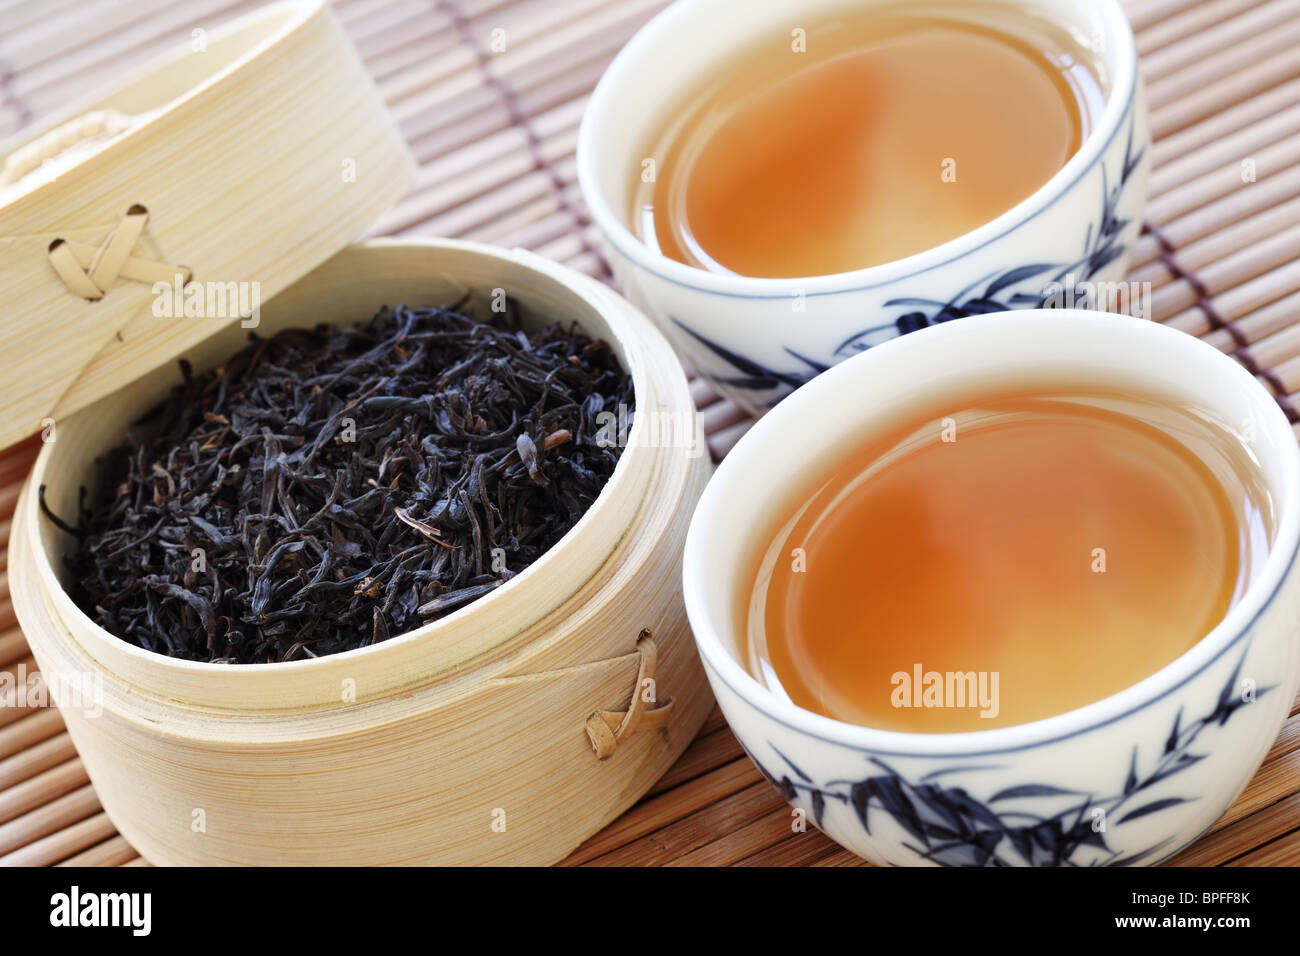 Black tea in a white cup with a tea leafs - Stock Image